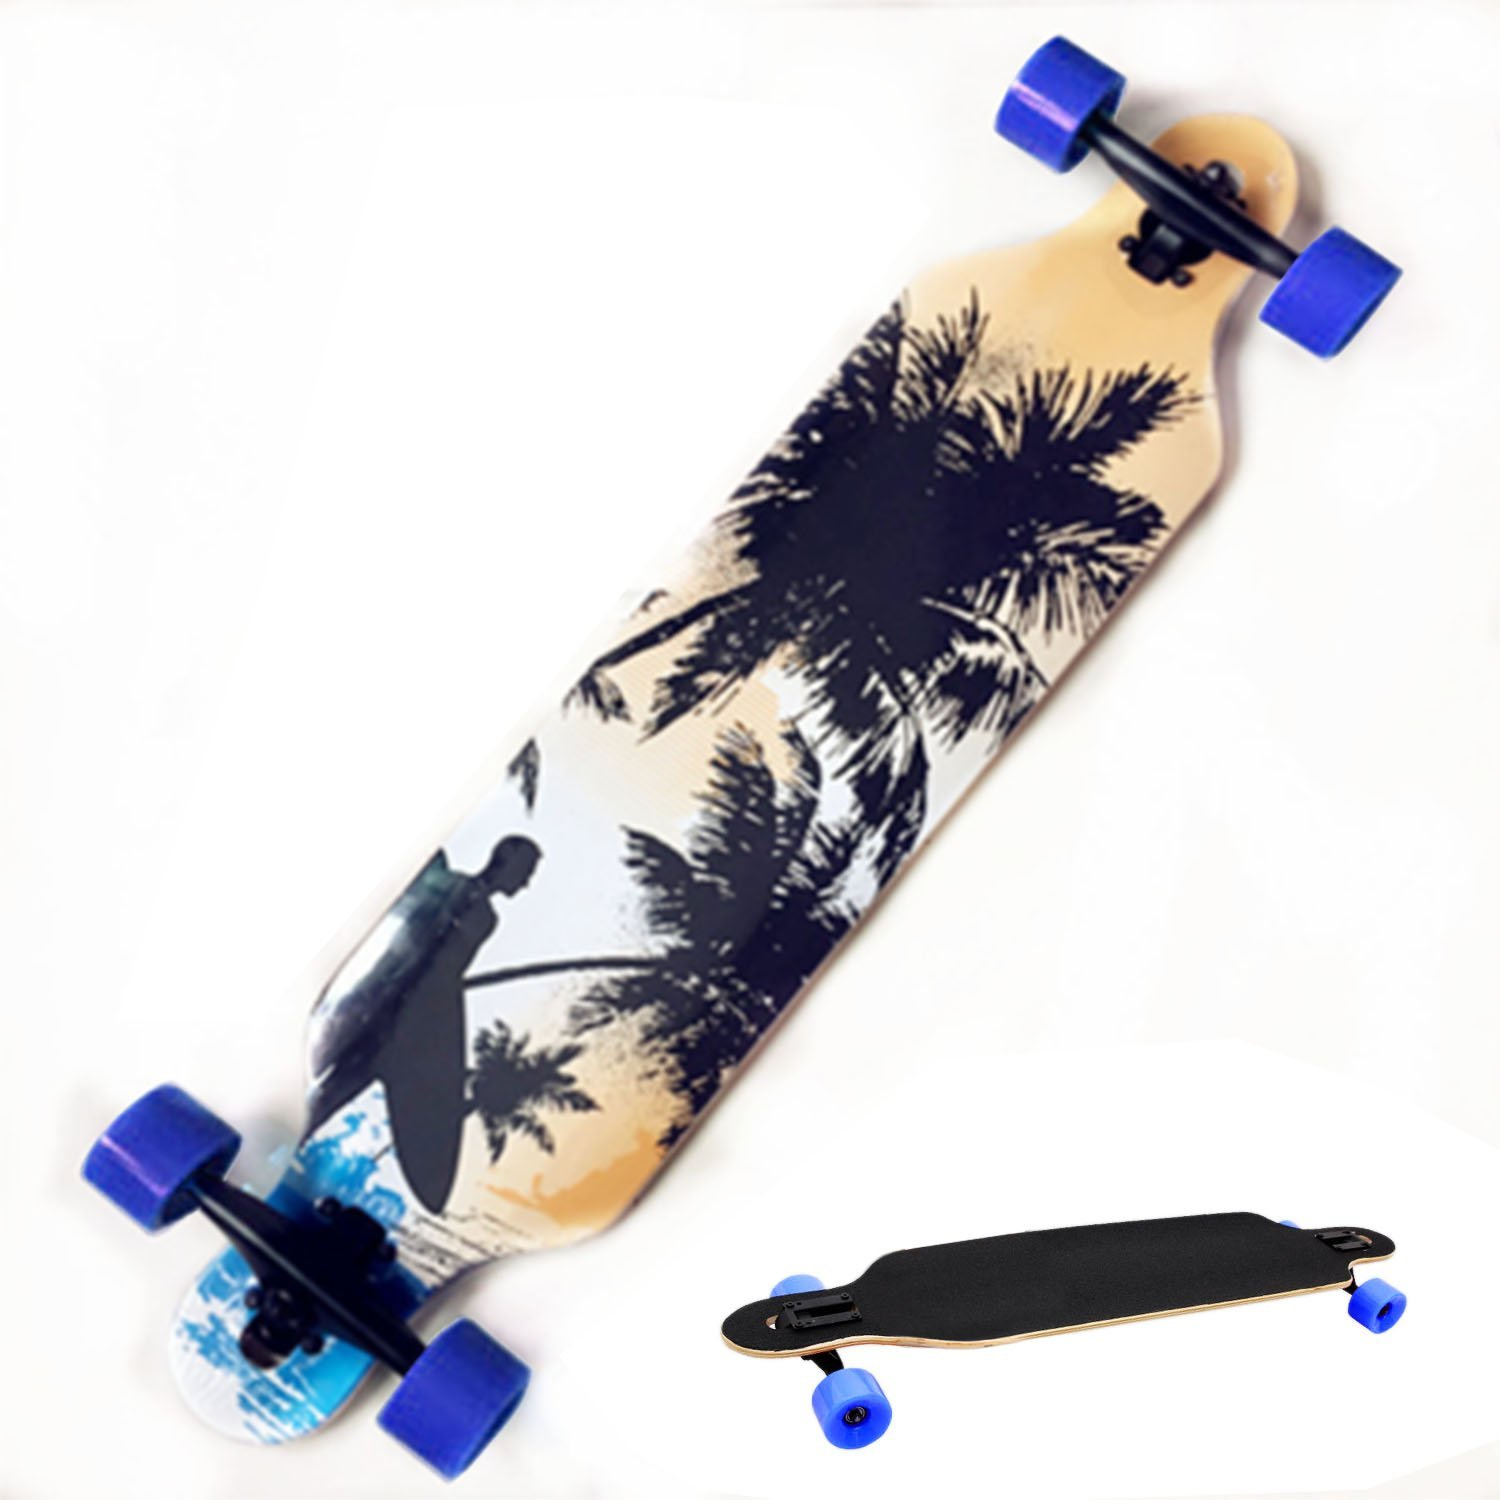 THE PROFESSIONAL WOOD PRINT LONGBOARD BY CNlinkco